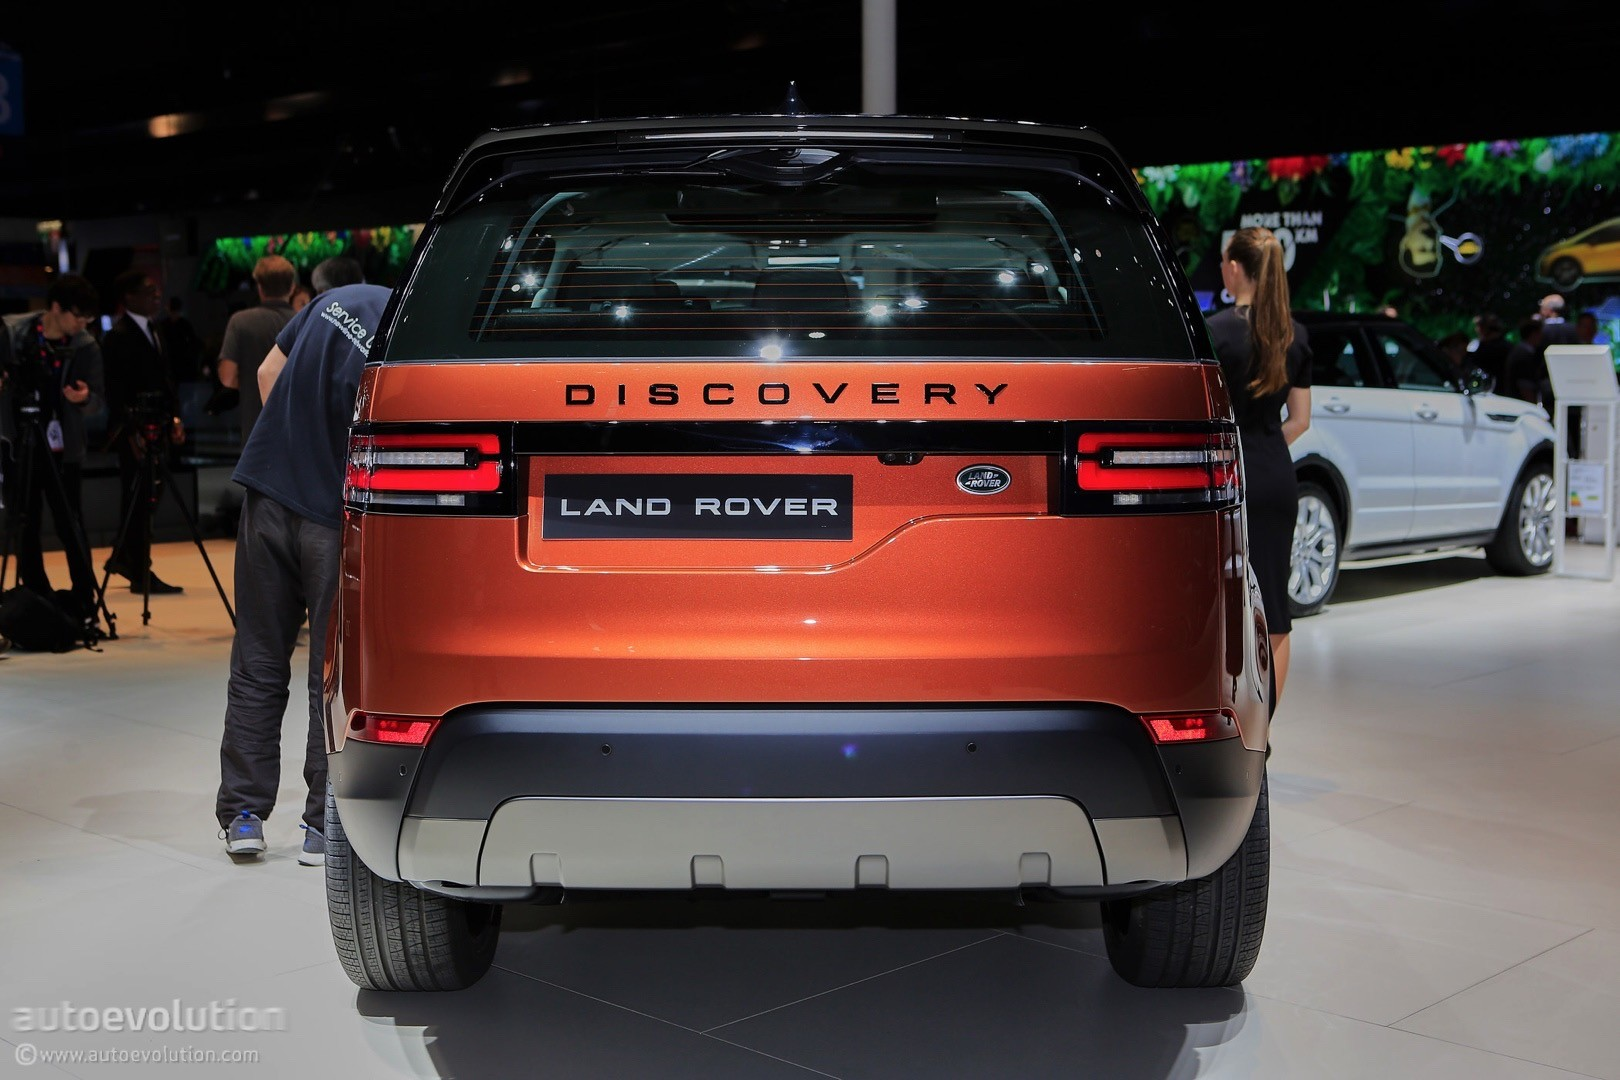 2017 land rover discovery presented in paris as the brand s most versatile suv autoevolution. Black Bedroom Furniture Sets. Home Design Ideas